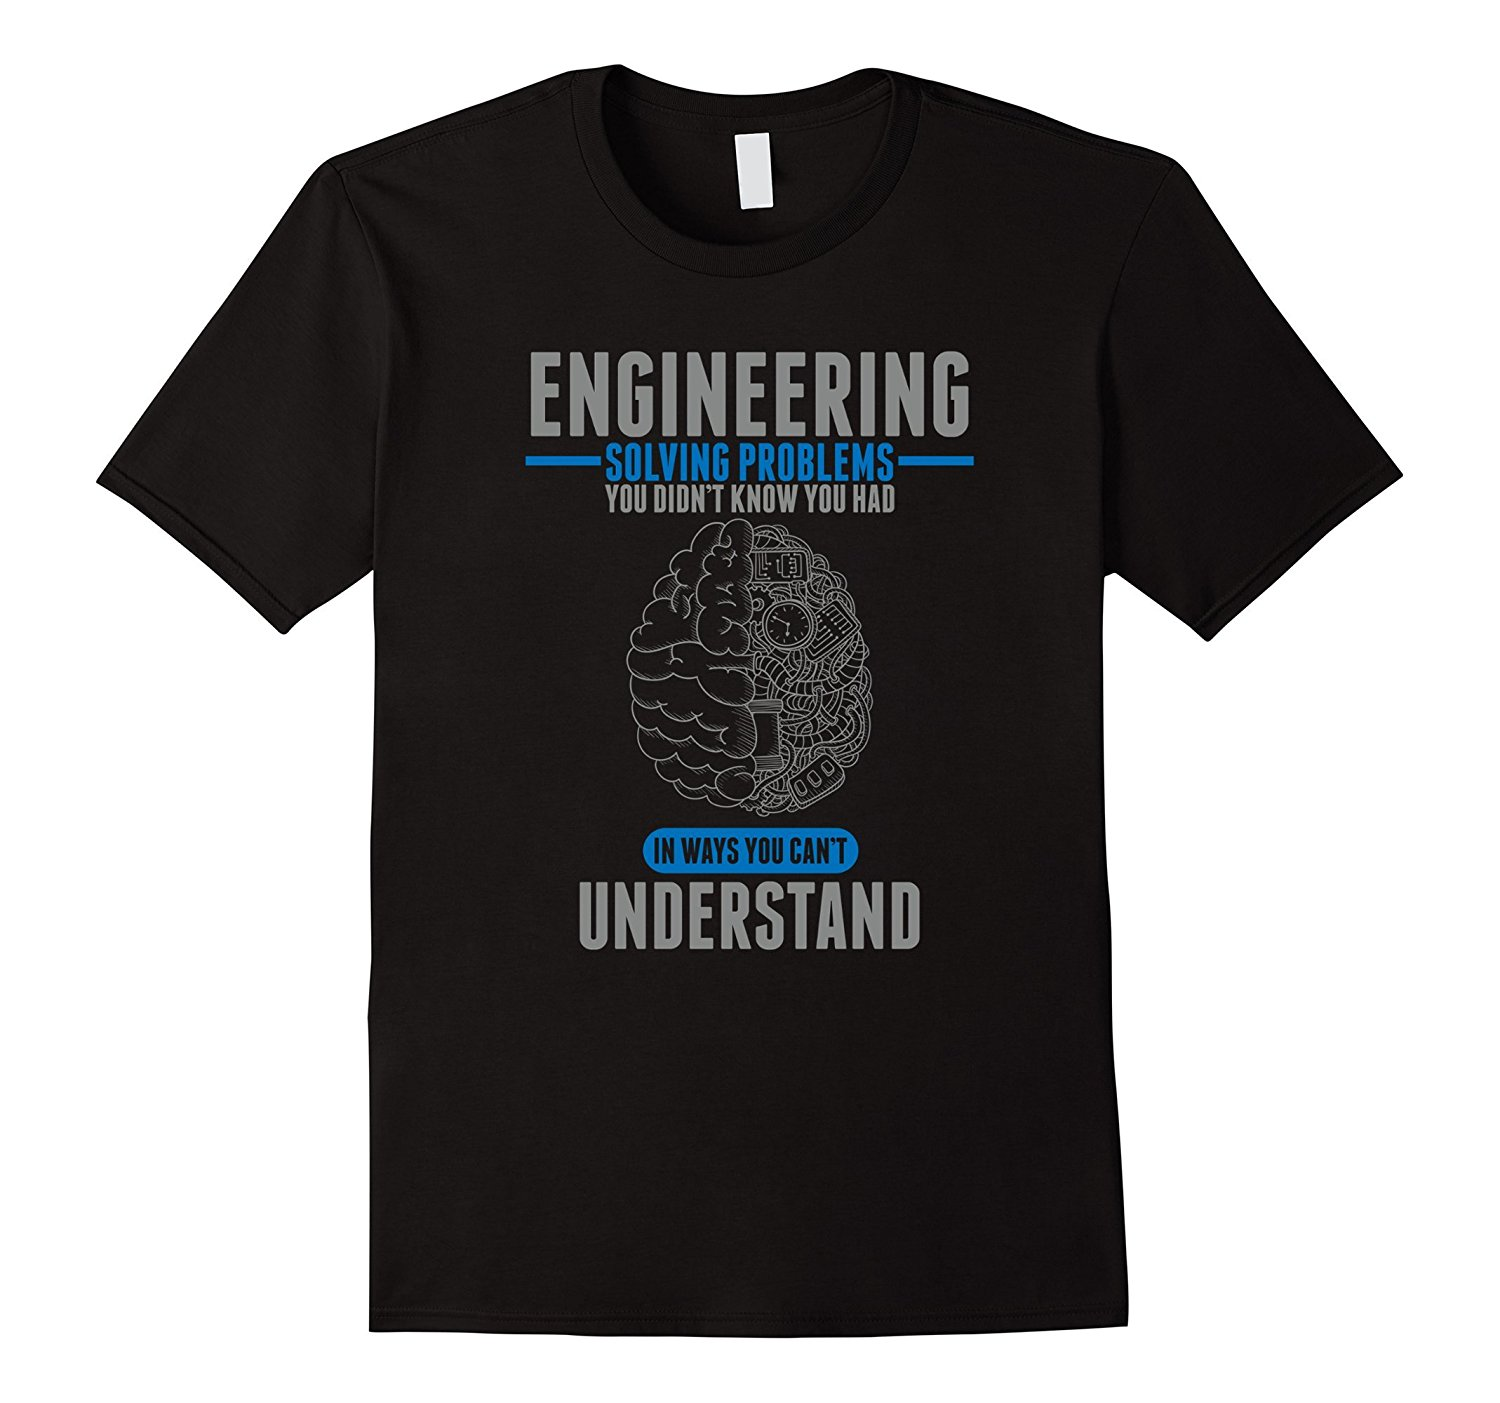 Engineer Solving Problems Funny Engineering T-Shirt 2017 New Summer Men Hot Sale Fashion Tops Male T Shirt Men Top Tee